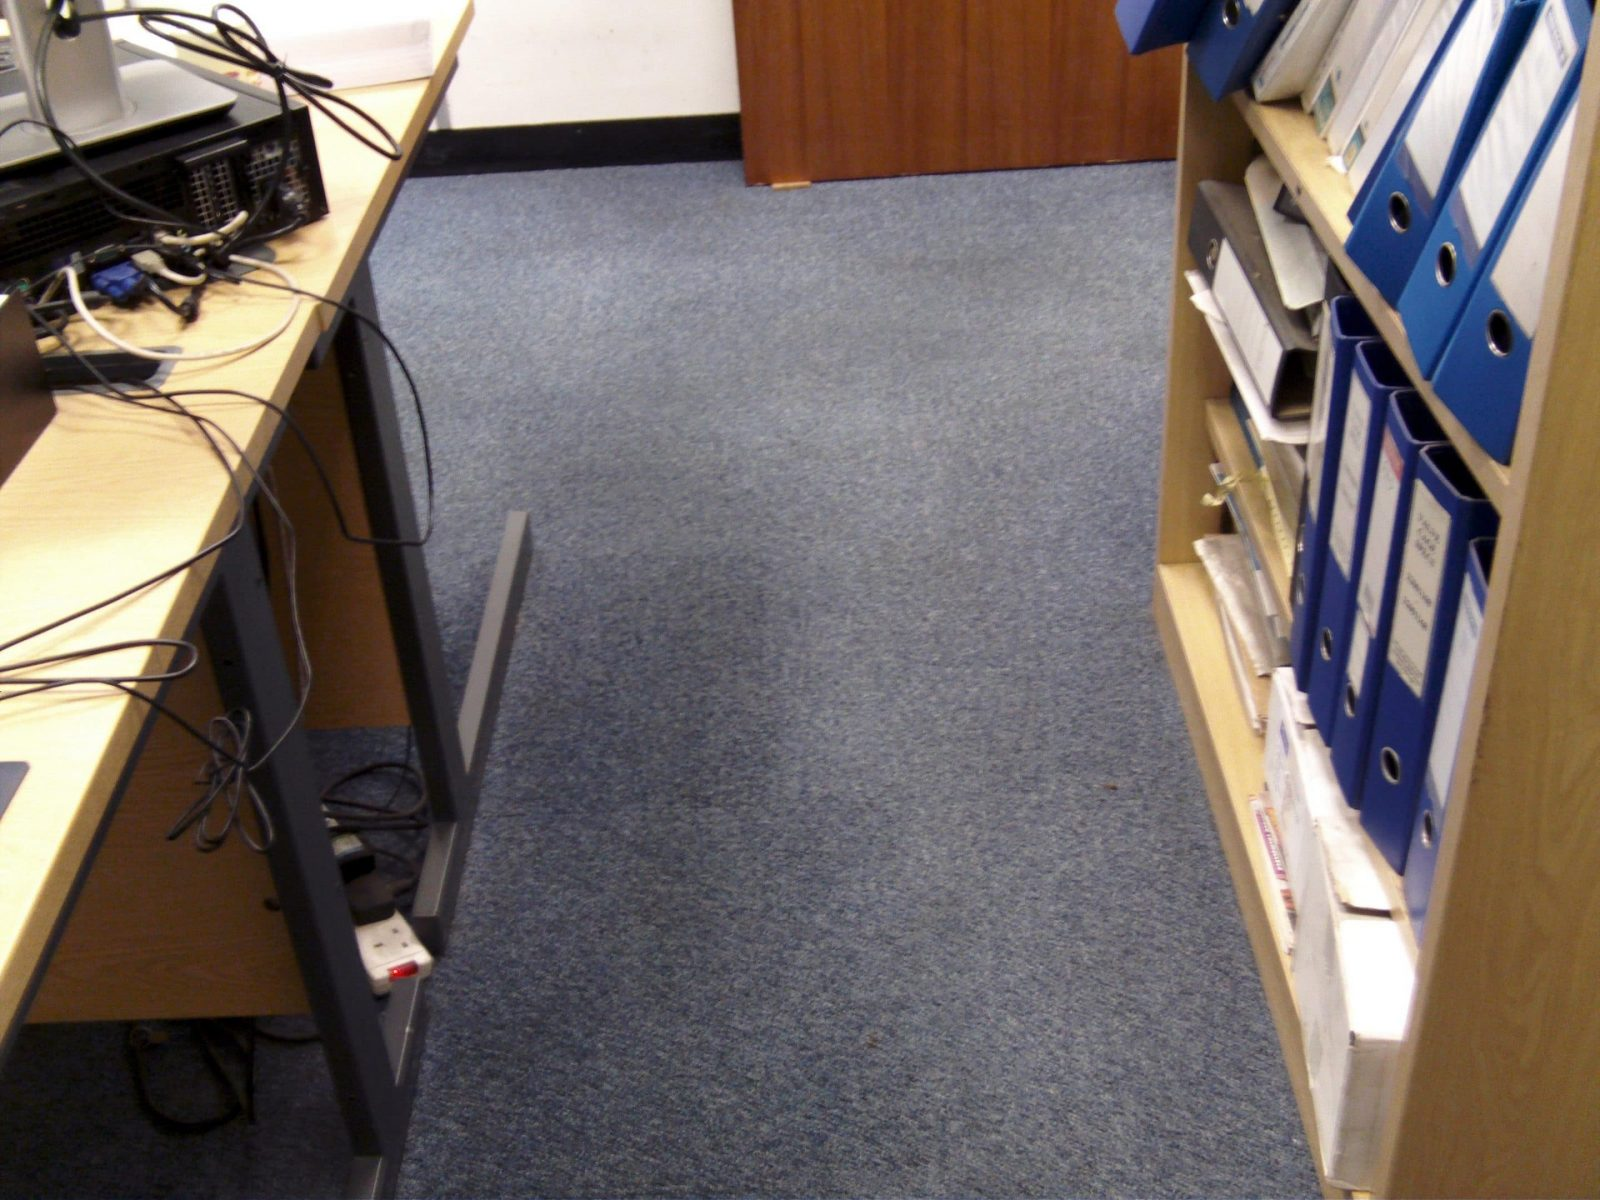 Offices carpet tiles after treatment